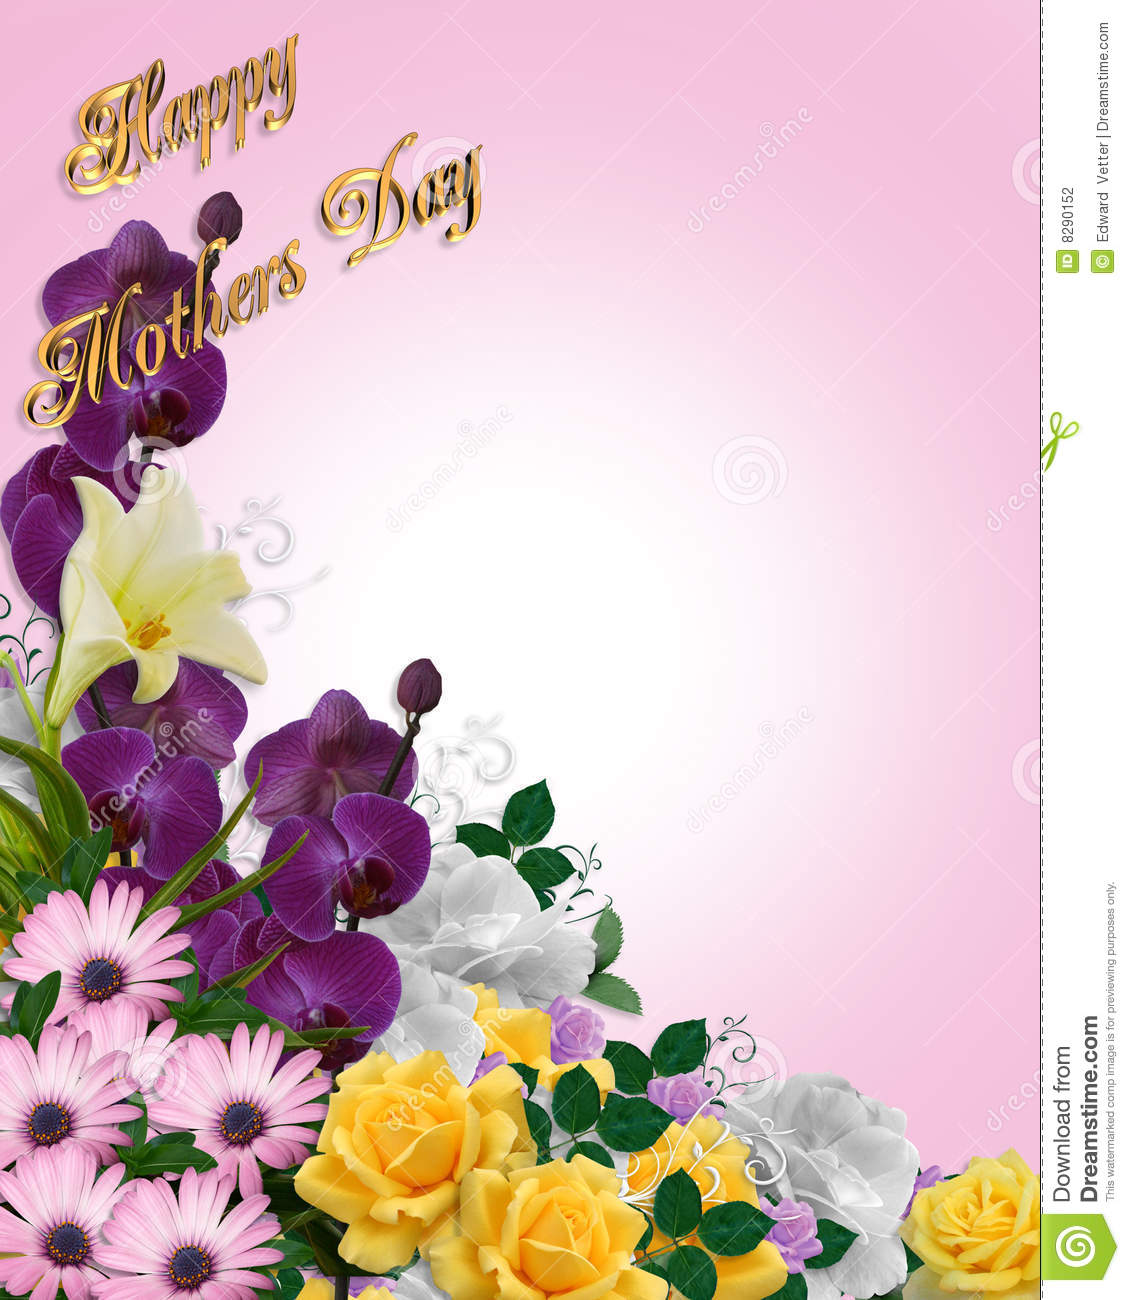 Mothers Day Floral Border Card